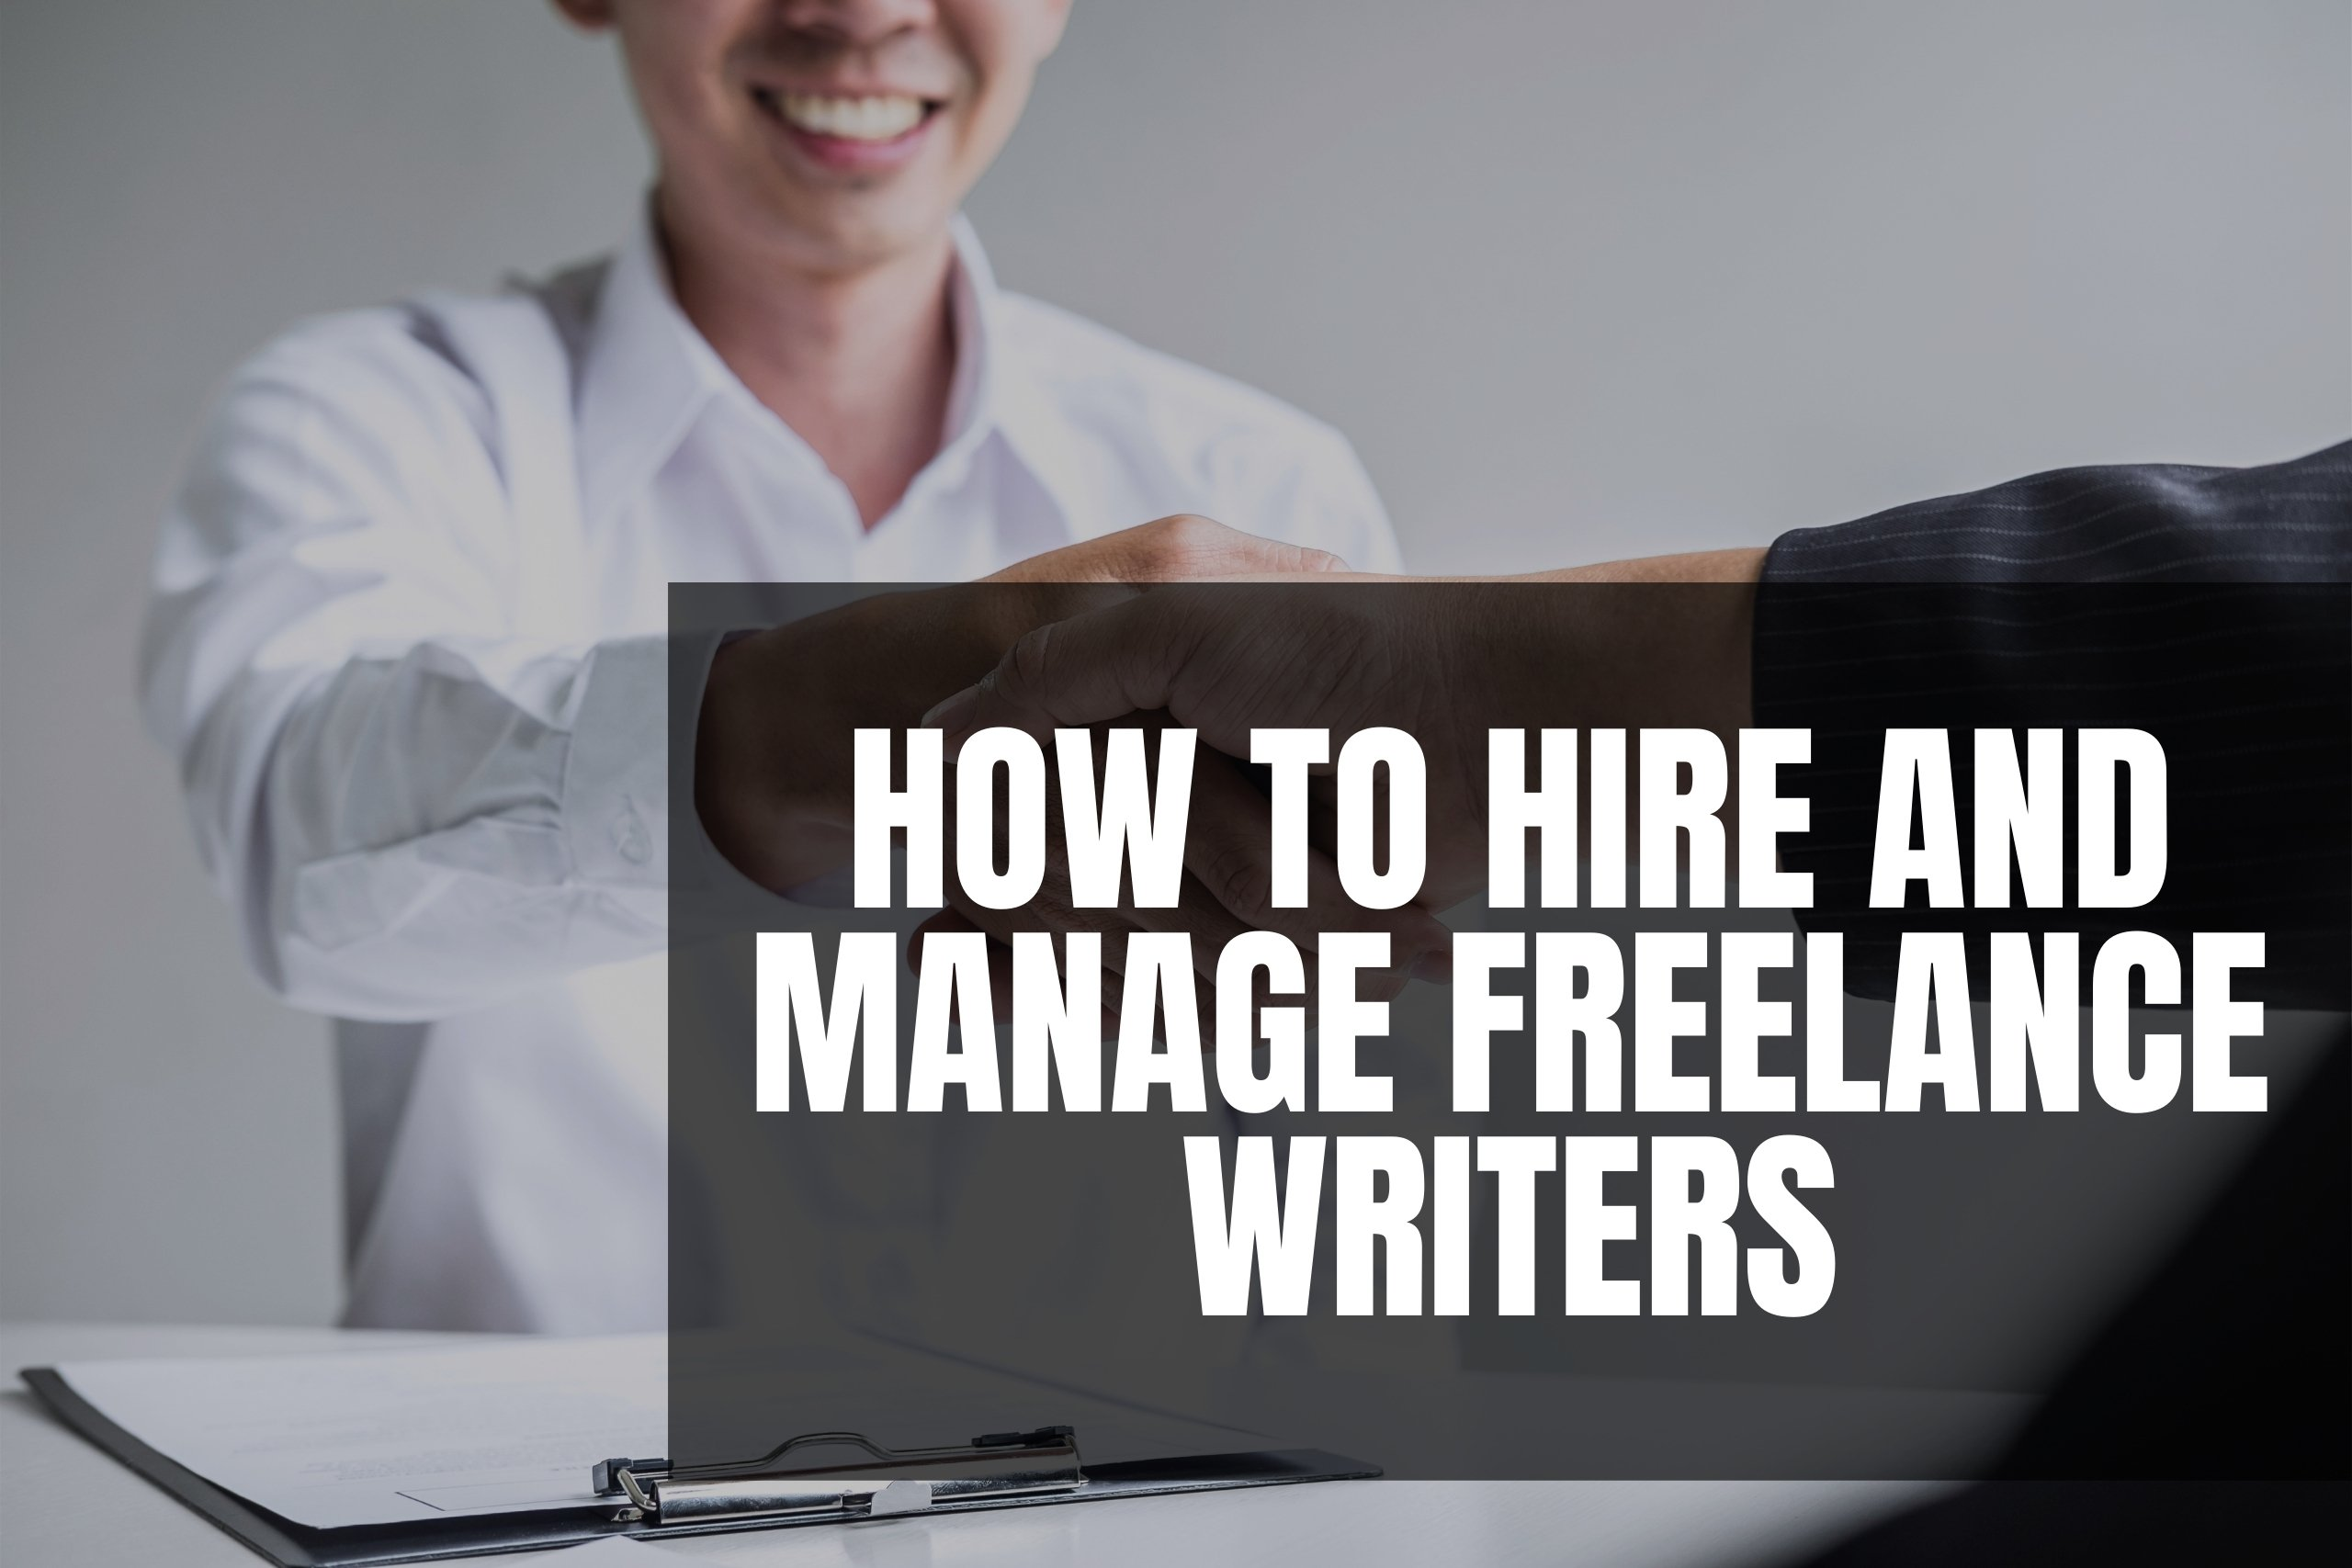 how to hire and manage freelance writers